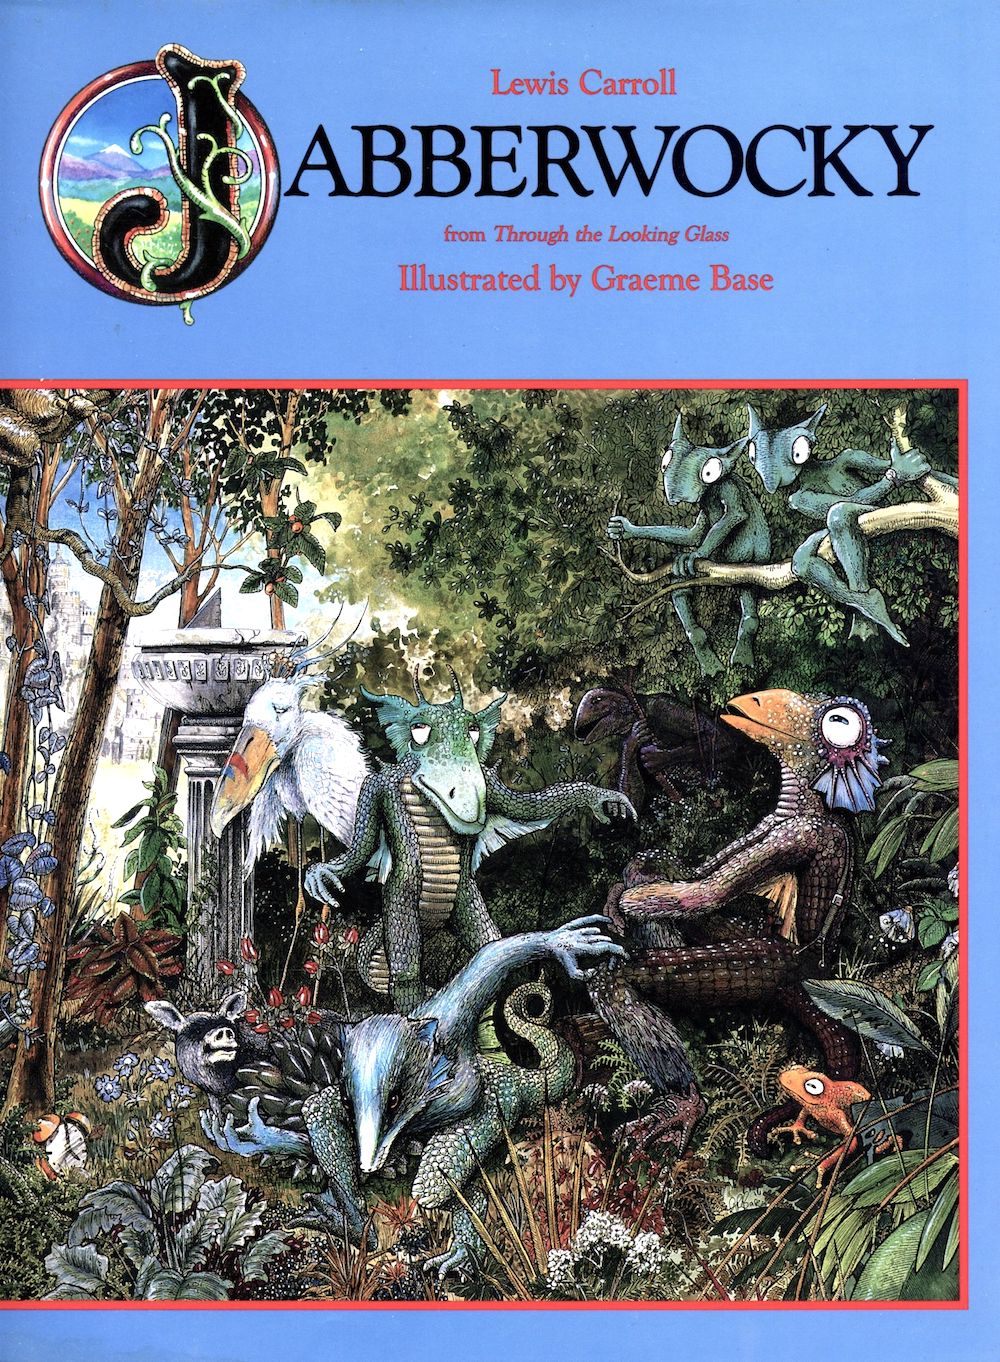 Cover to 1989 hardcover edition of 'Jabberwocky' illustrated by Graeme Base with a tableau of various creatures lolling around contendedly